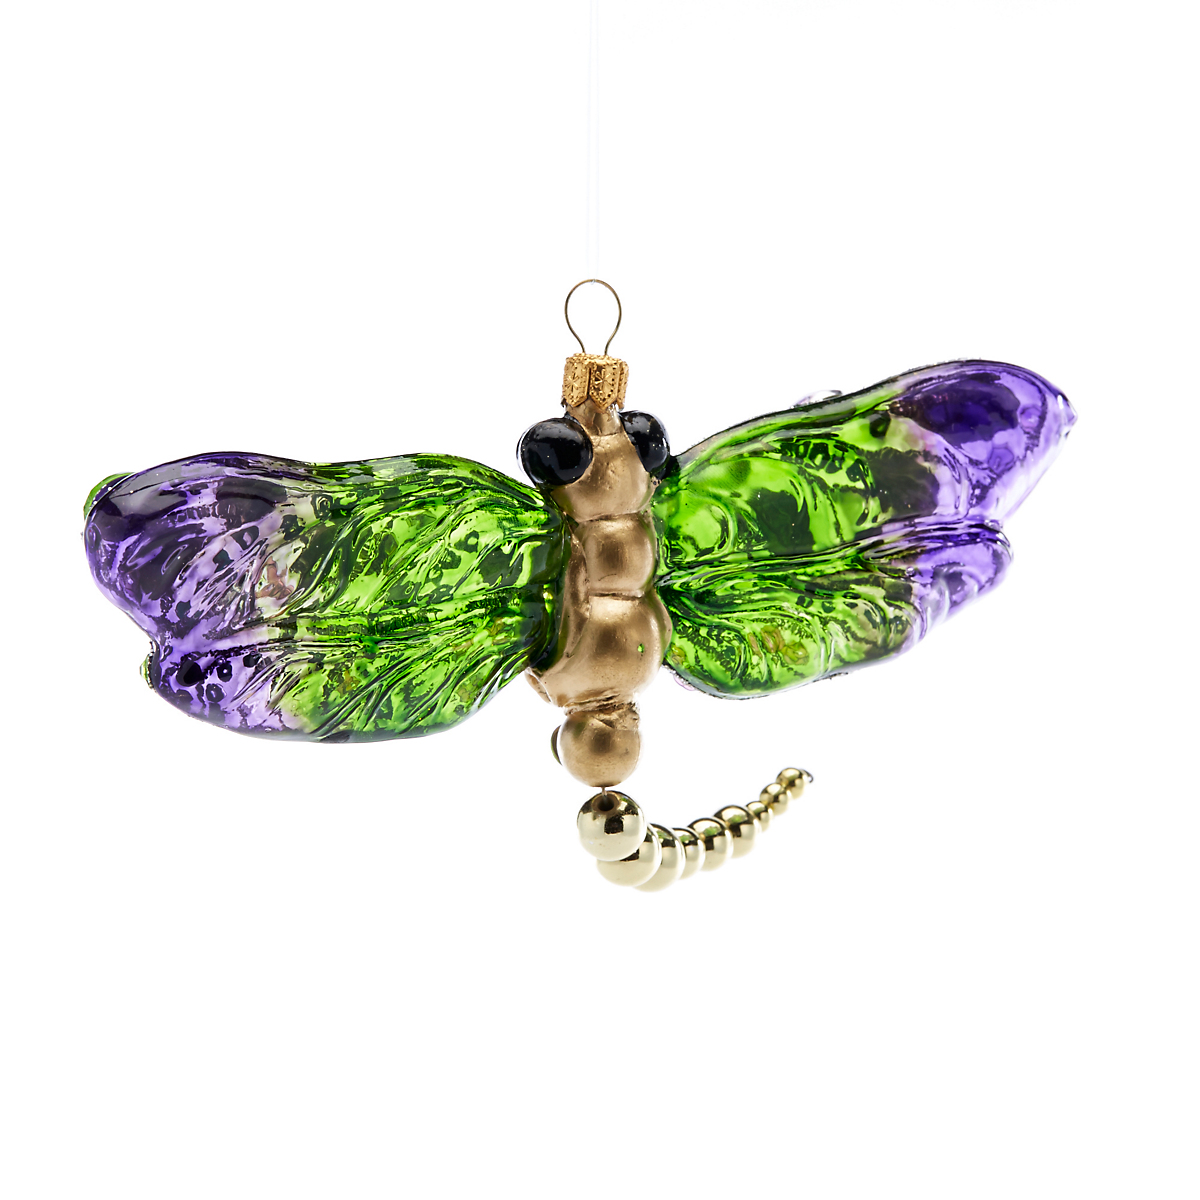 Garden Lover's Dragonfly Christmas Ornament | Gump's